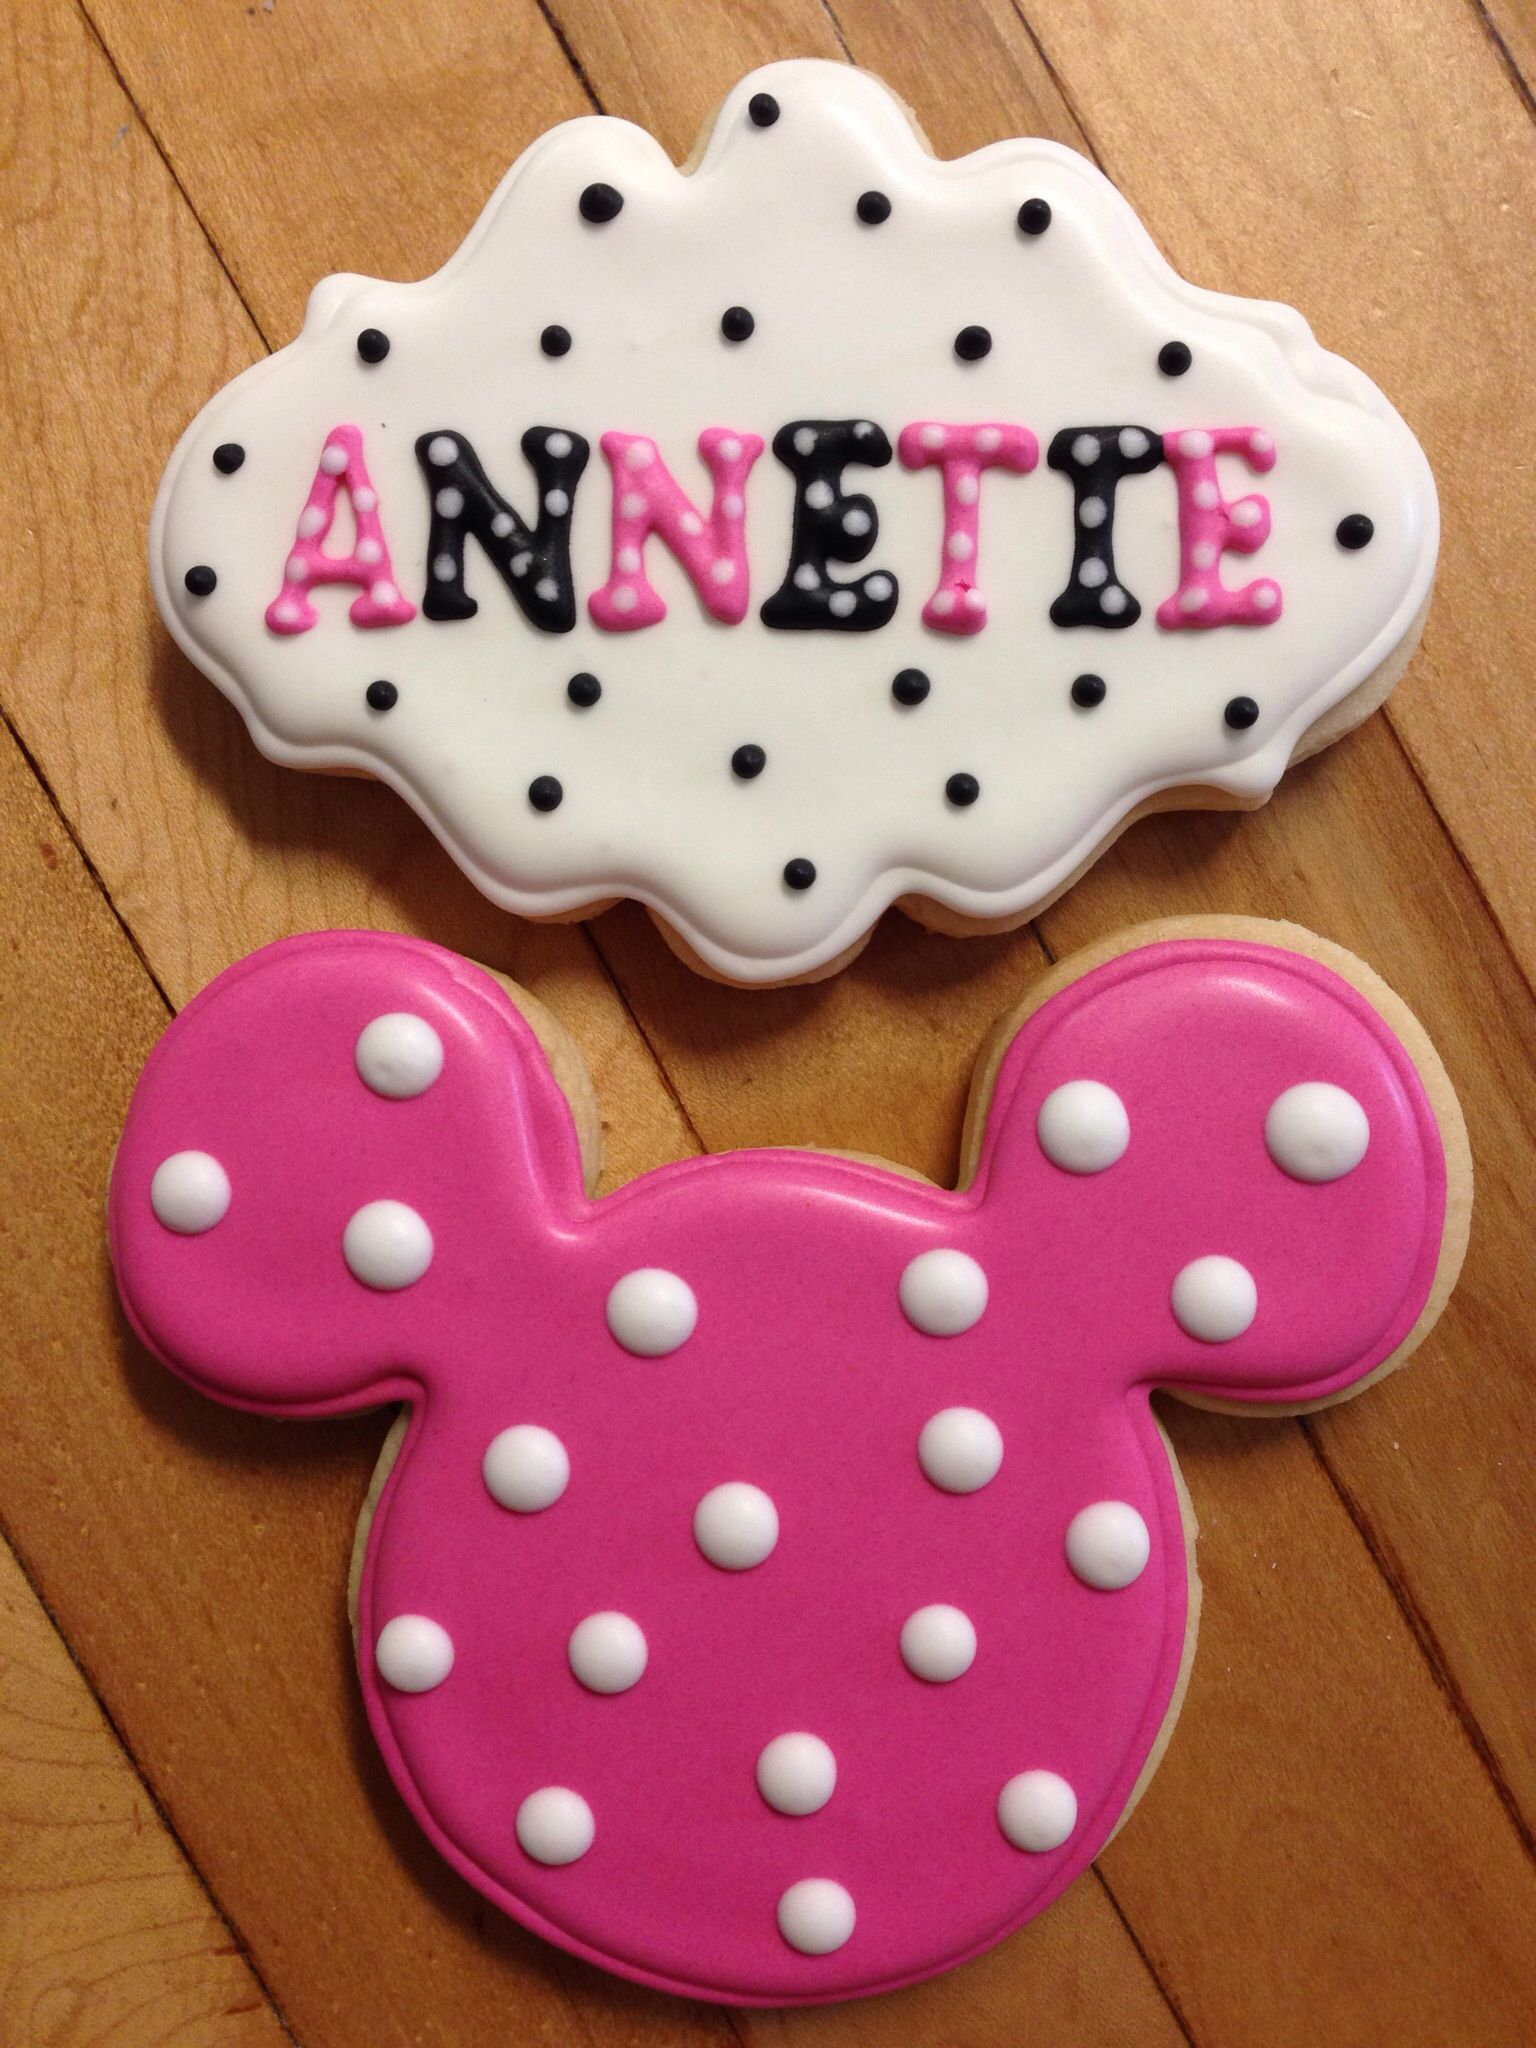 Kids Party cookie favors